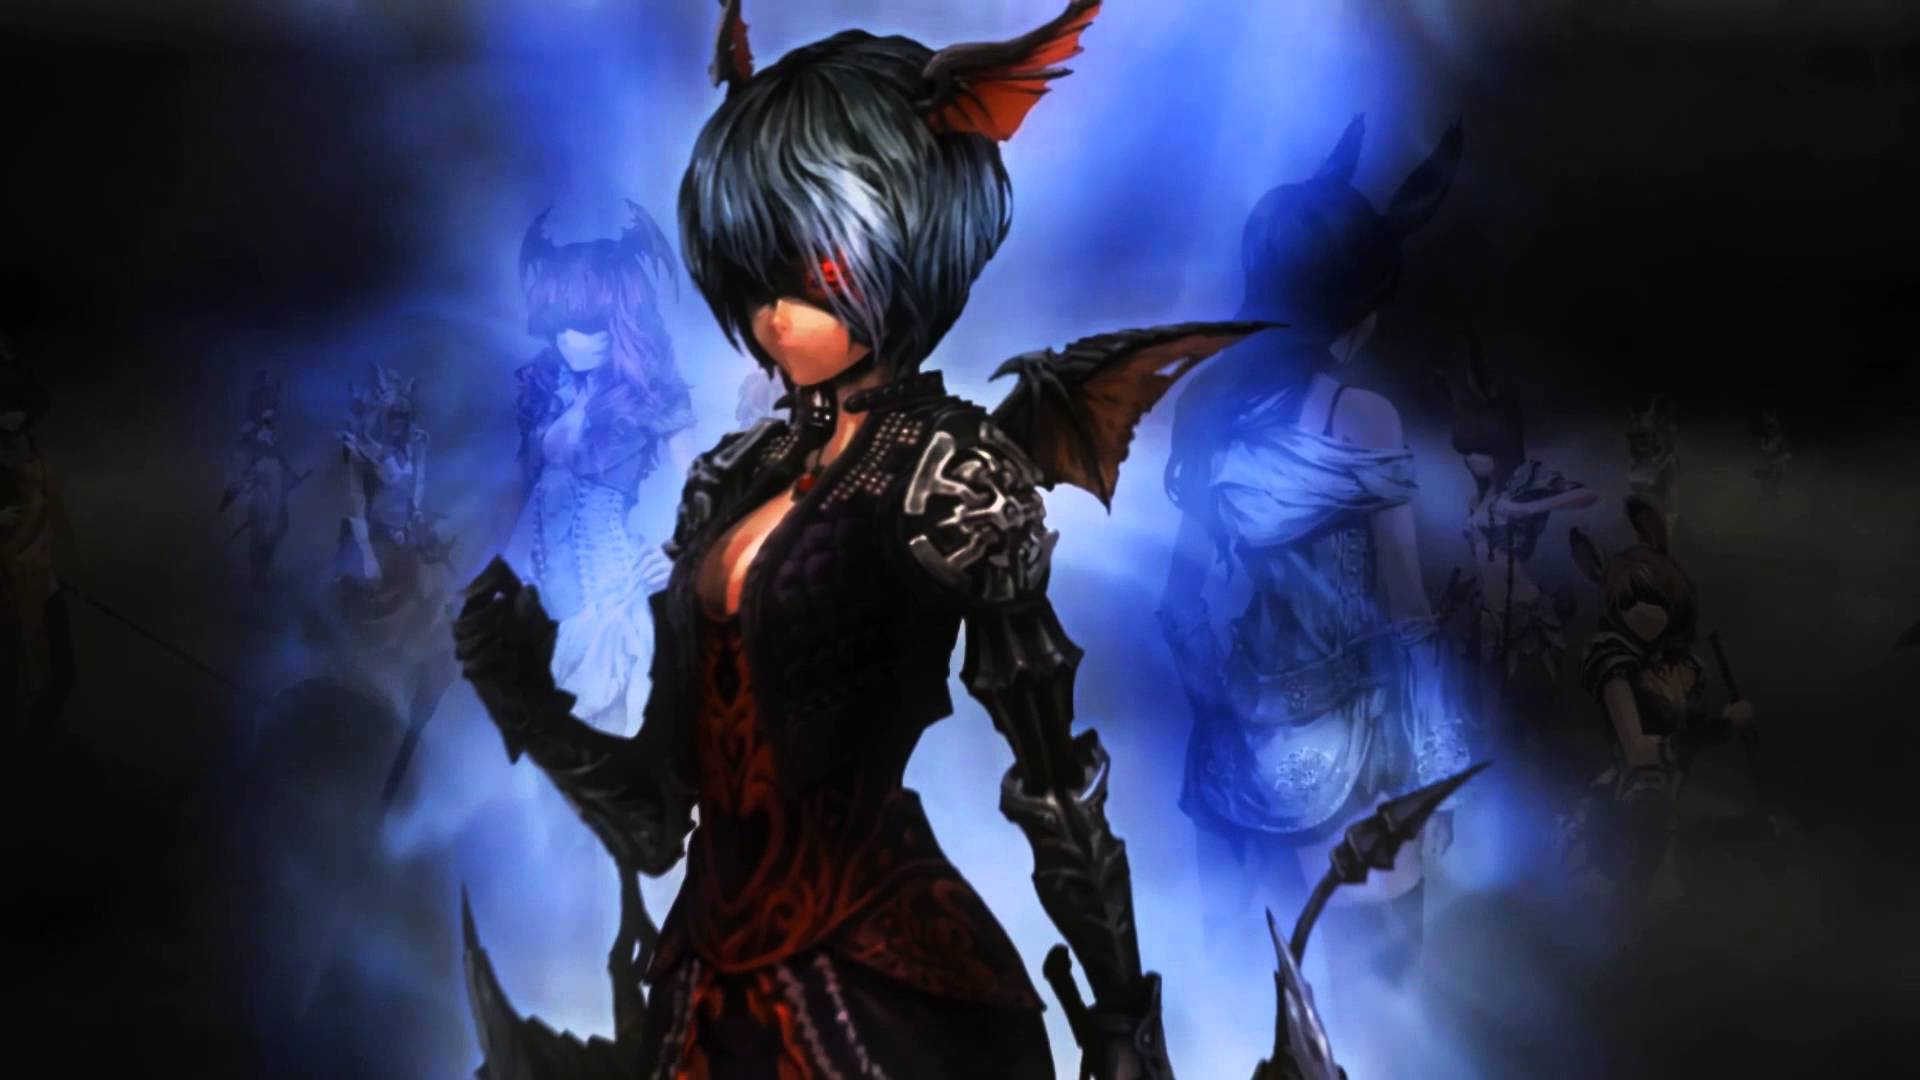 tera rising wallpaper - photo #16